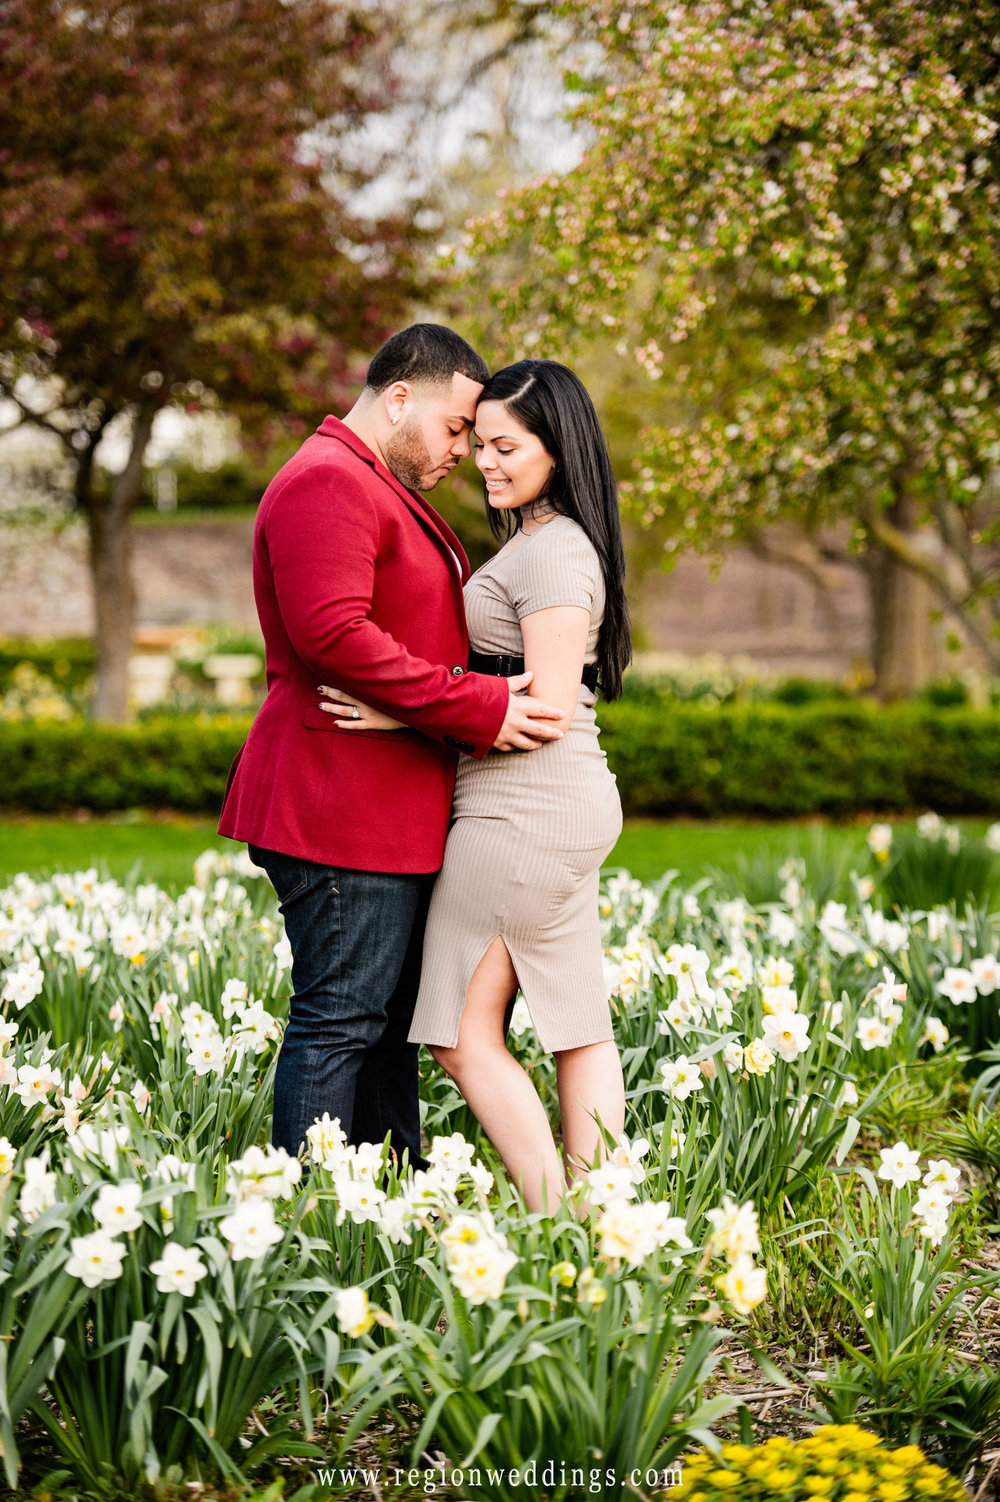 Engagement photo in a bed of flowers in Valparaiso, Indiana.